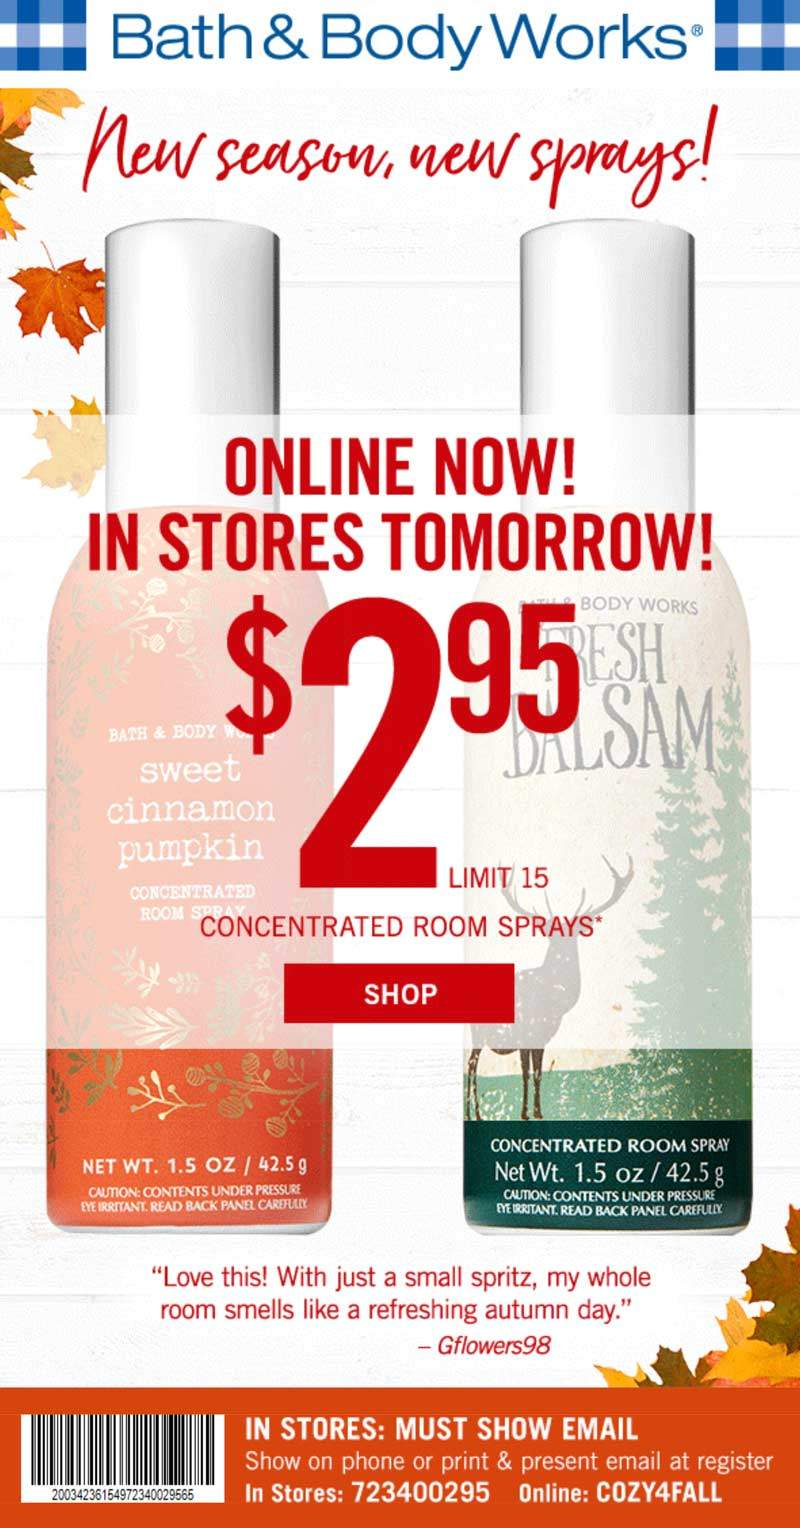 Bath & Body Works Coupon July 2019 $3 room sprays today at Bath & Body Works, or online via pomo code COZY4FALL